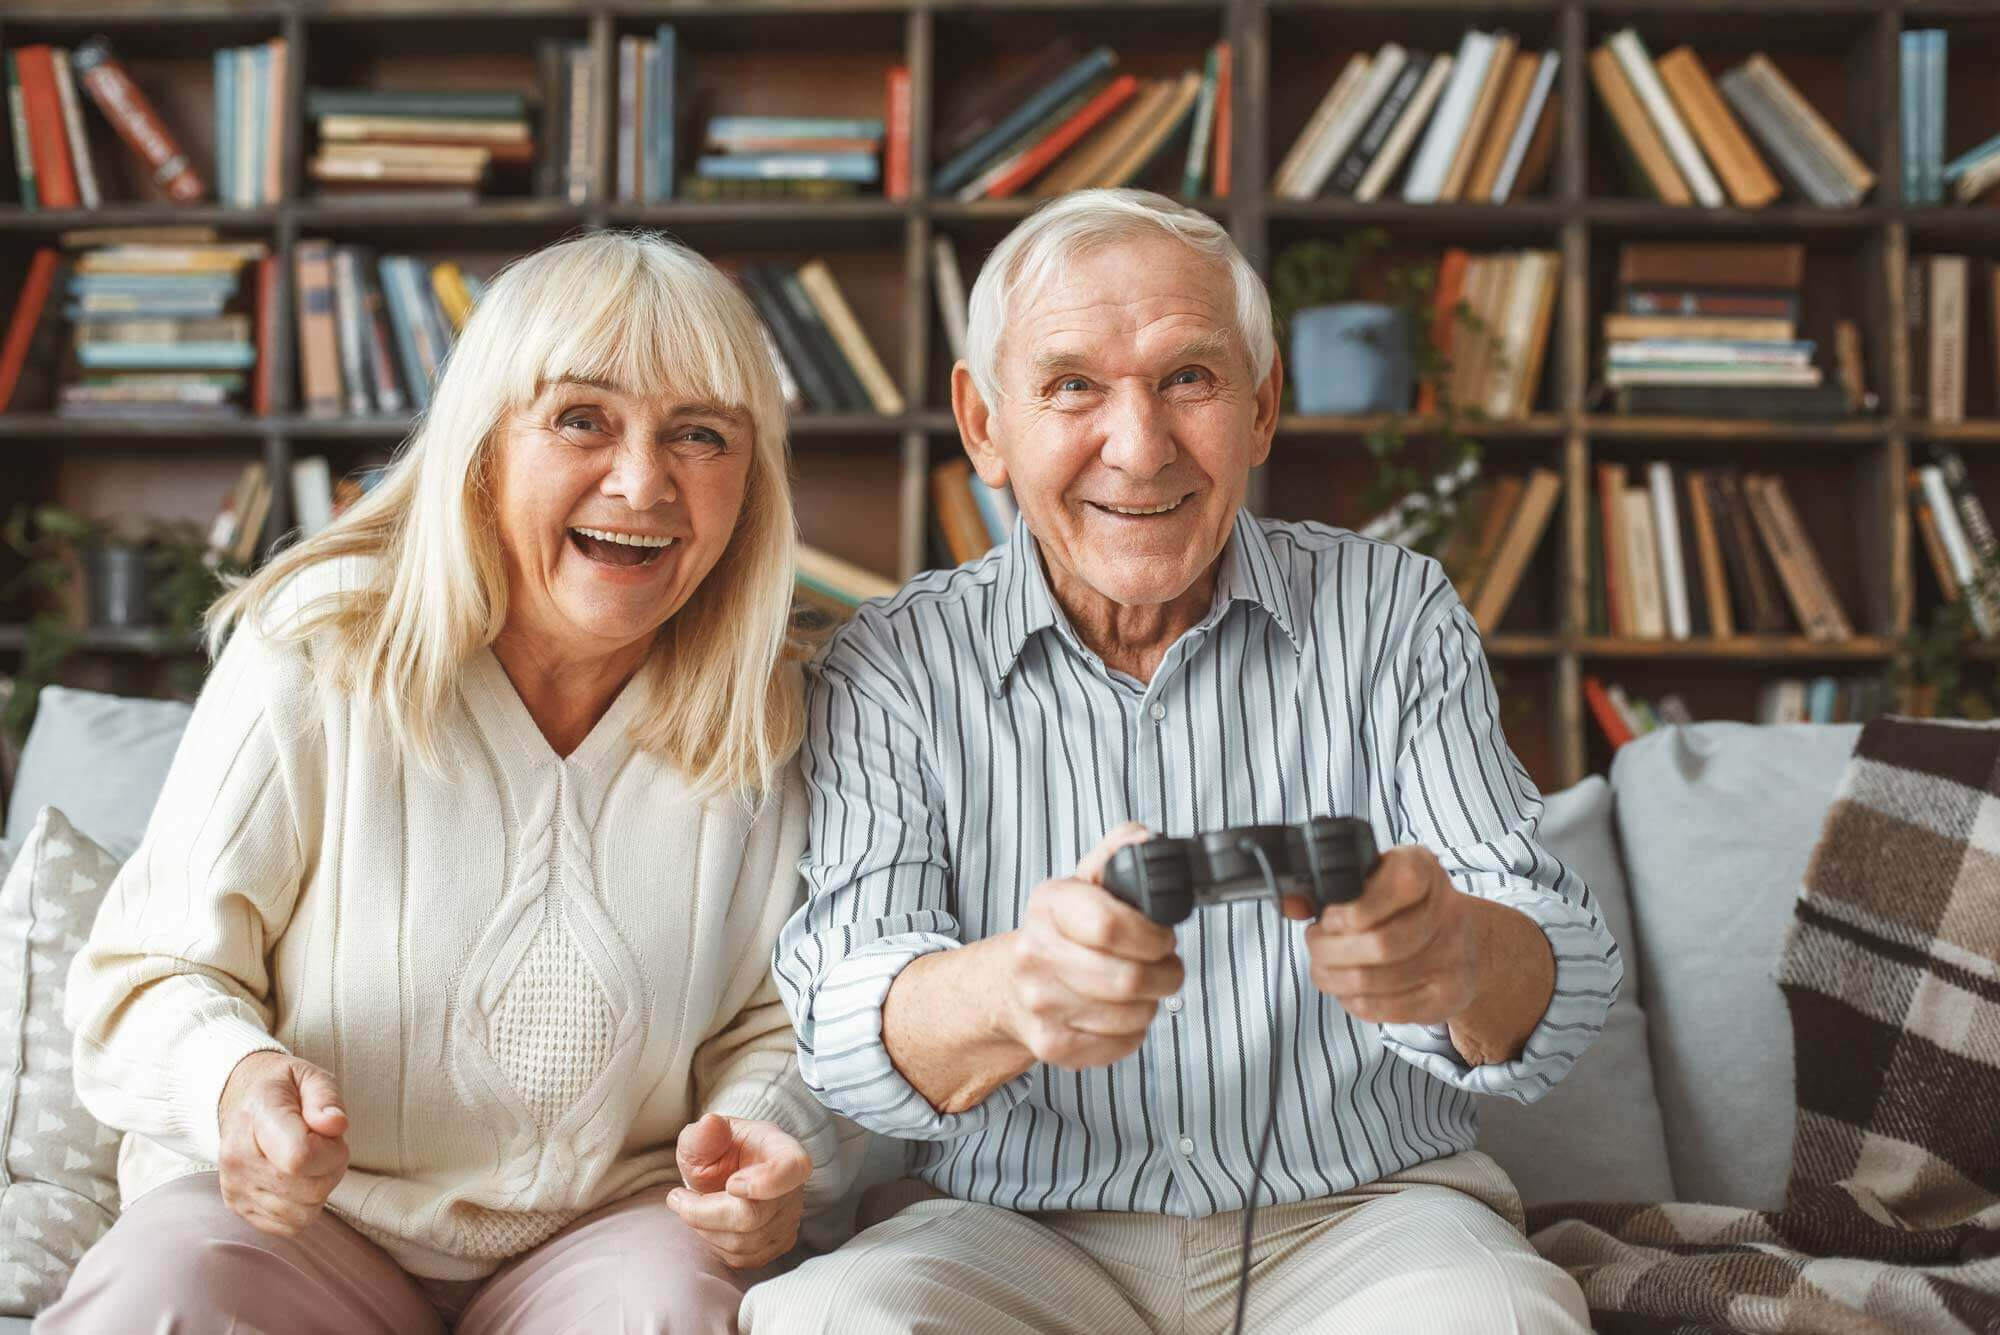 senior couple has fun playing video games together